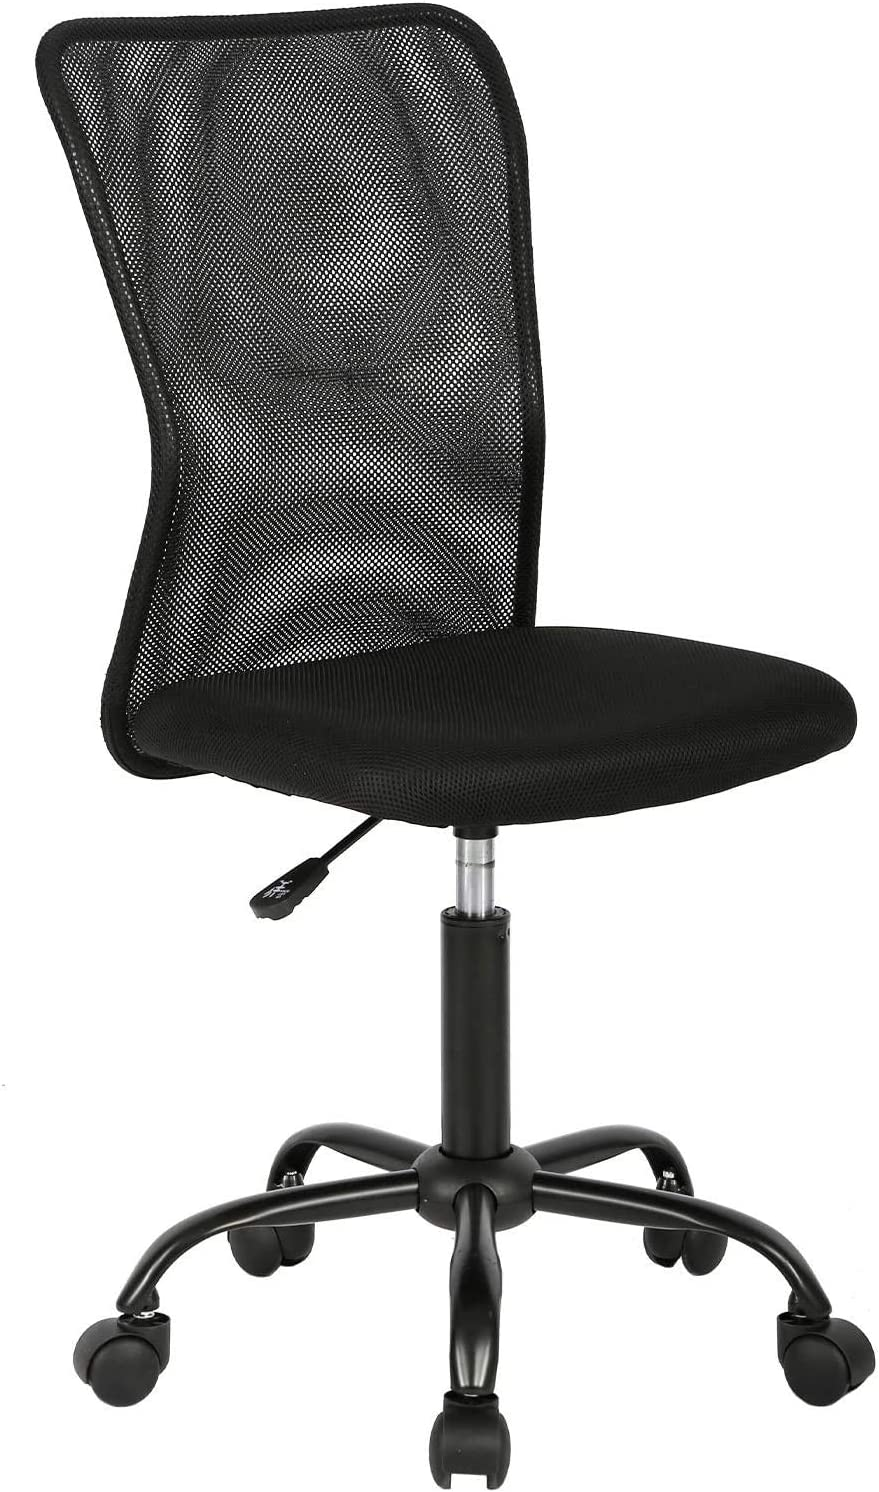 Ergonomic Office Chair Executive Mid Back Mesh Desk Chair Armless Rolling Swivel Chair Height Adjustable Drafting Chair Support